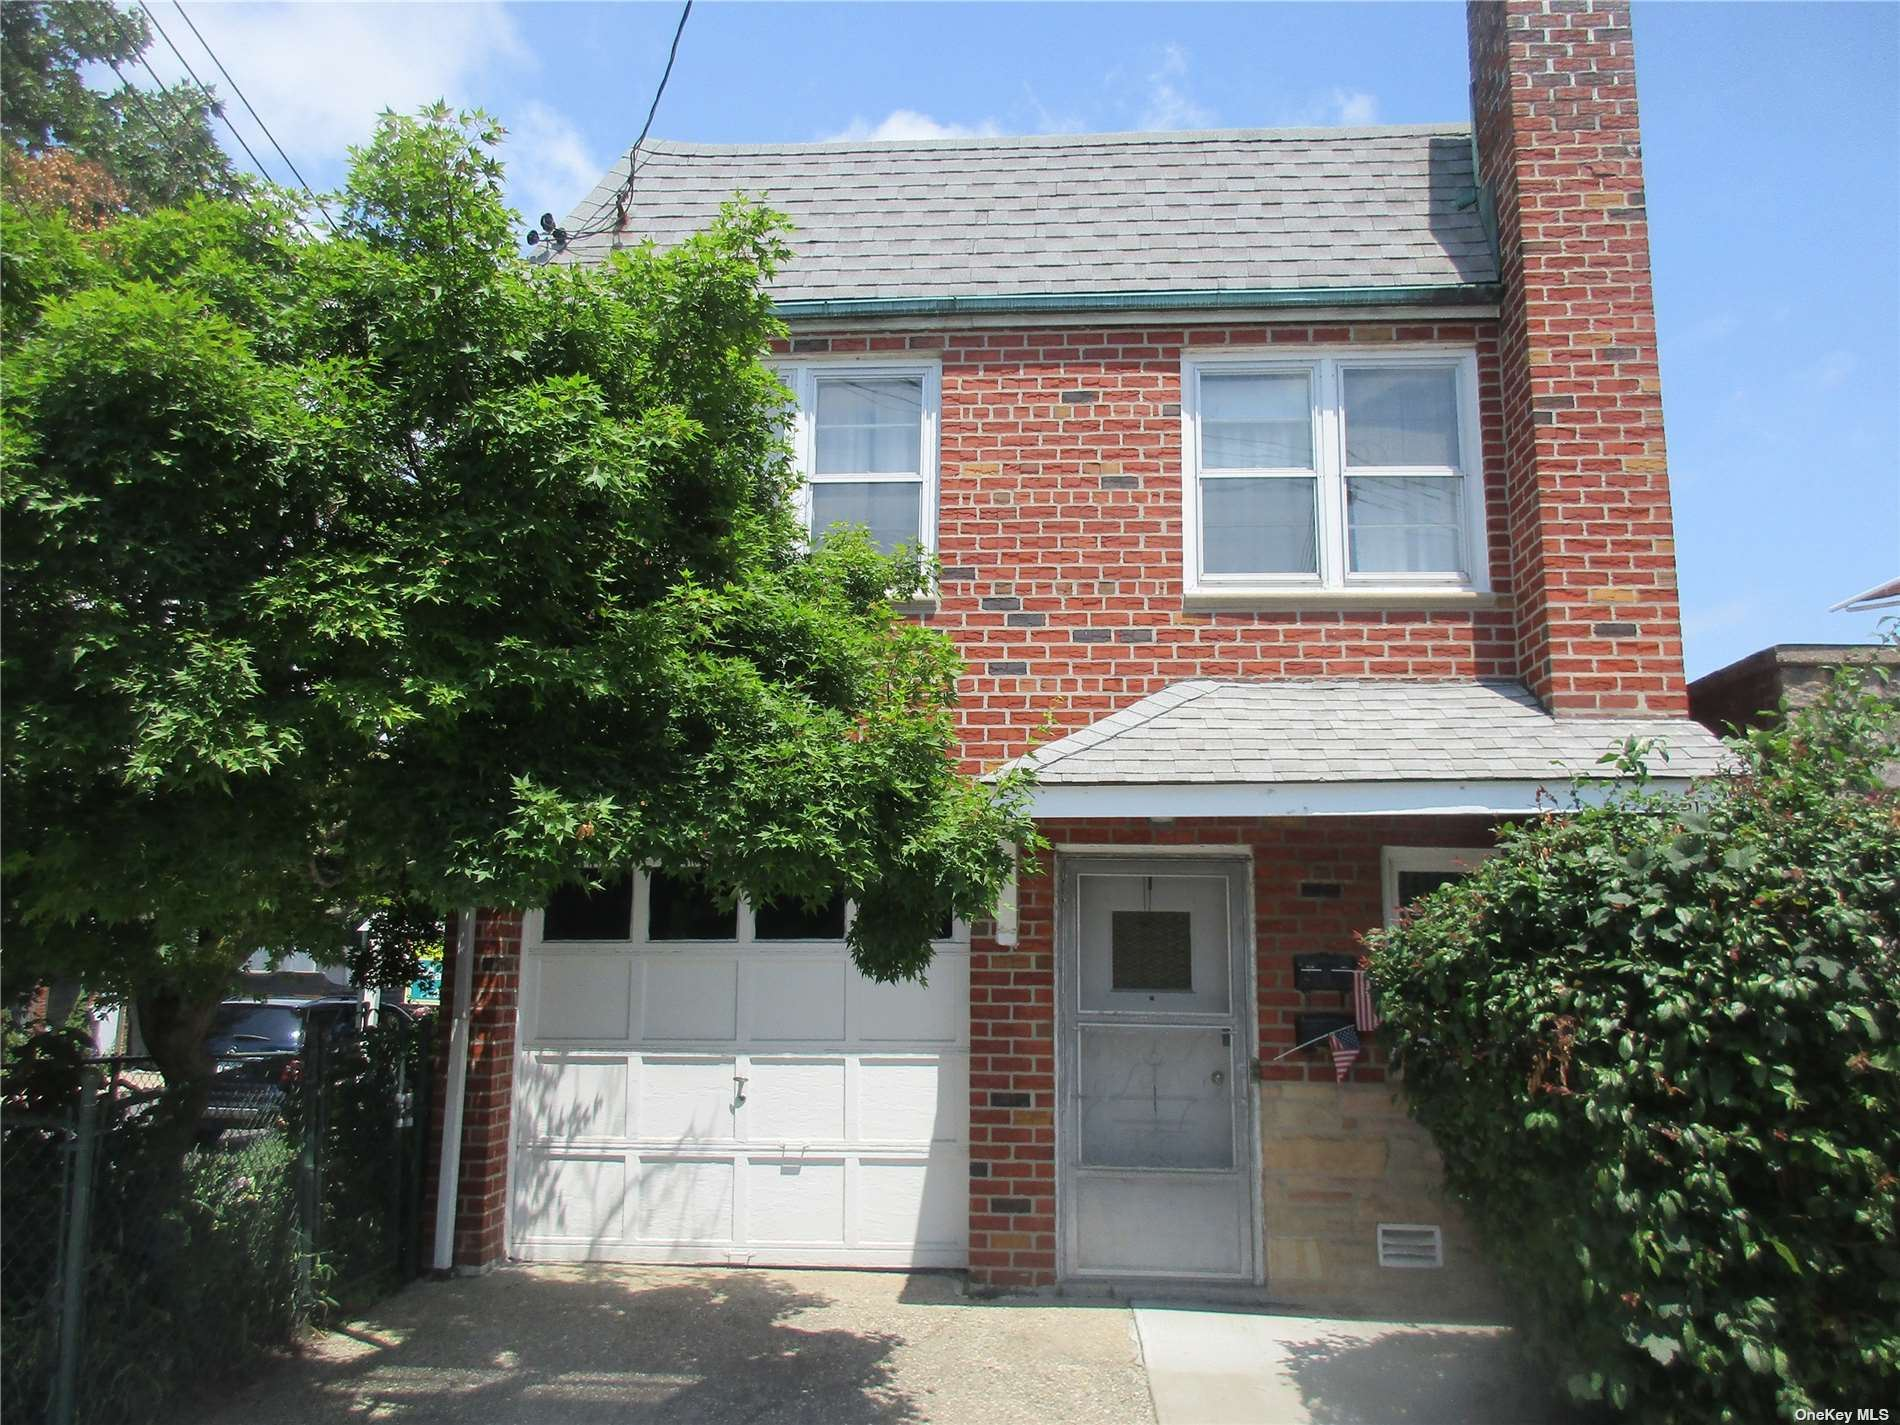 73-01 68th Avenue, Middle Village, NY 11379 - MLS#: 3323676